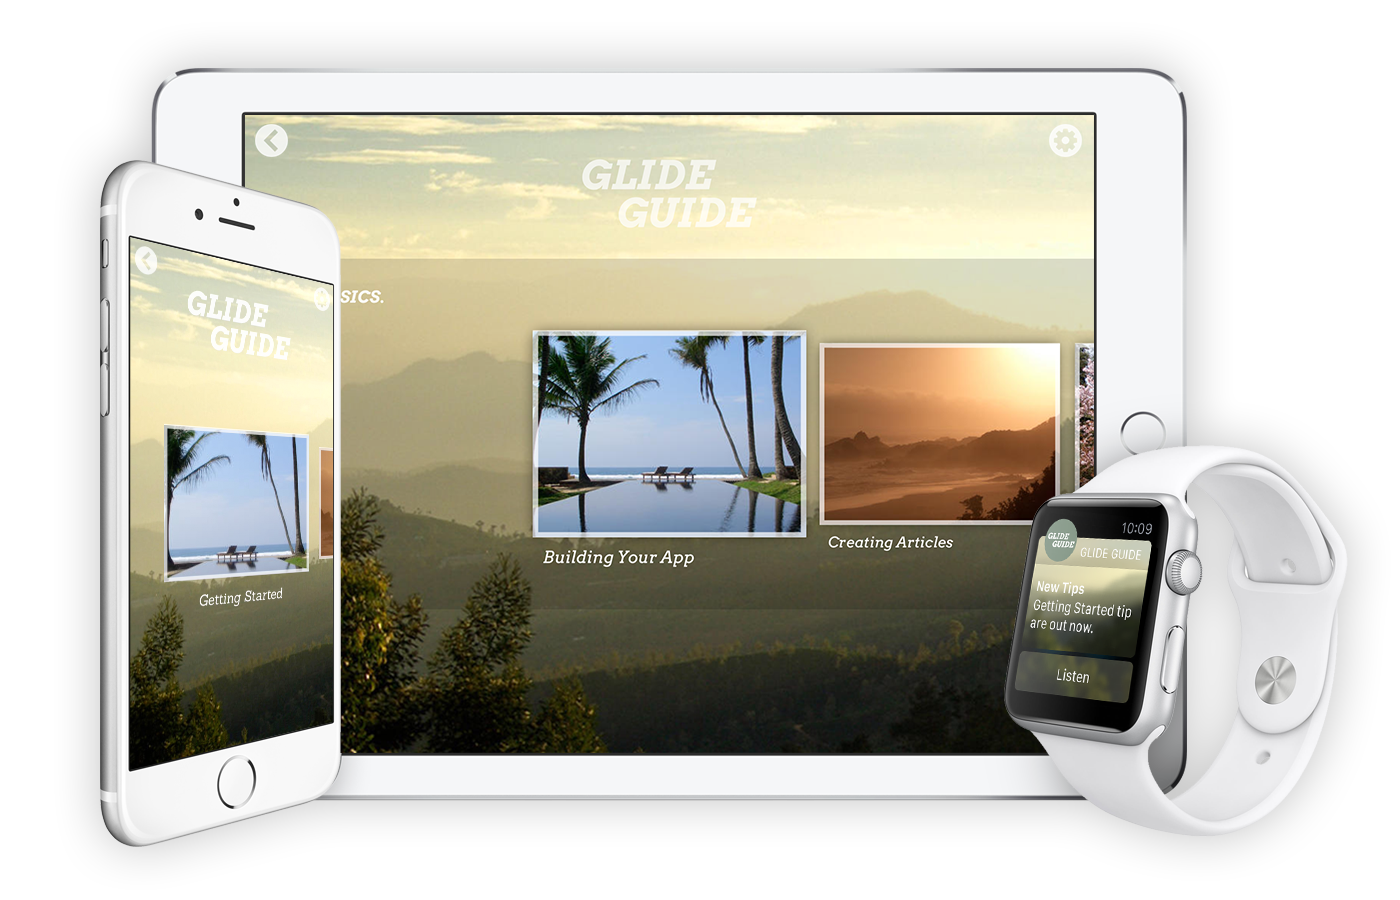 Kickstarter project 'Glide' brings drag-and-drop development to iOS apps